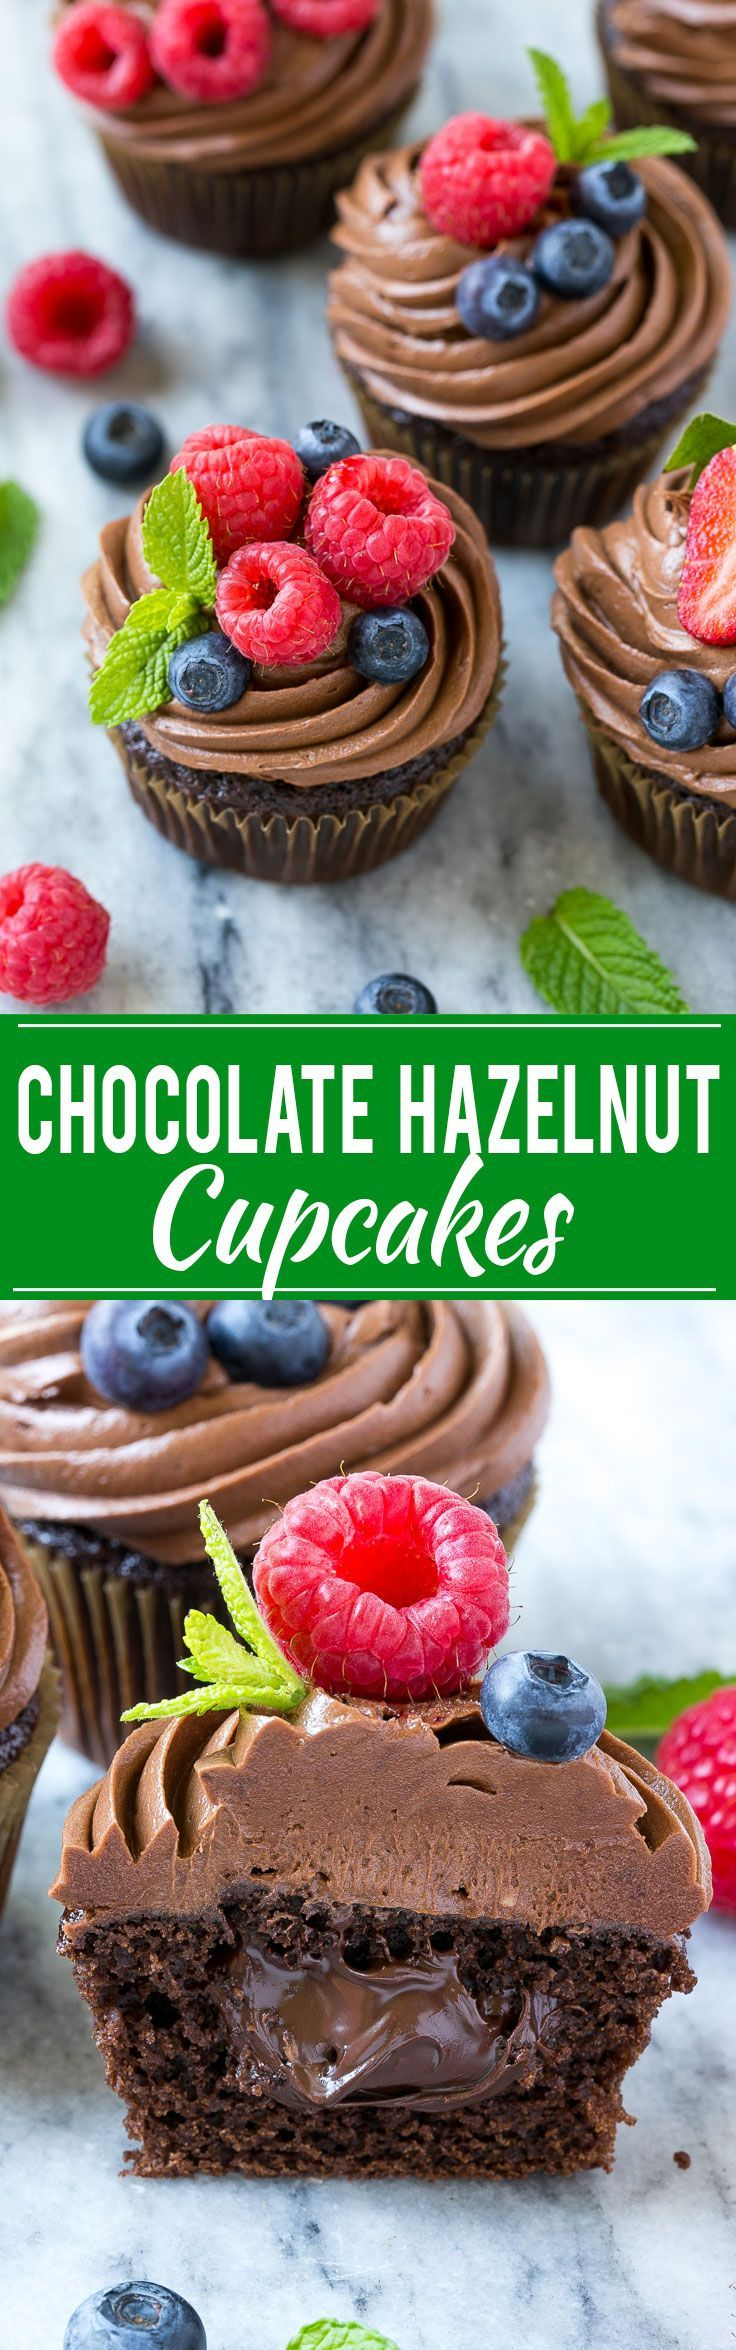 This recipe for chocolate hazelnut cupcakes is chocolate cupcakes filled with milk chocolate hazelnut spread, then finished off with chocolate hazelnut frosting and fresh berries. The perfect treat for a special occasion! #chocmeister #chocolatehazelnut #ad